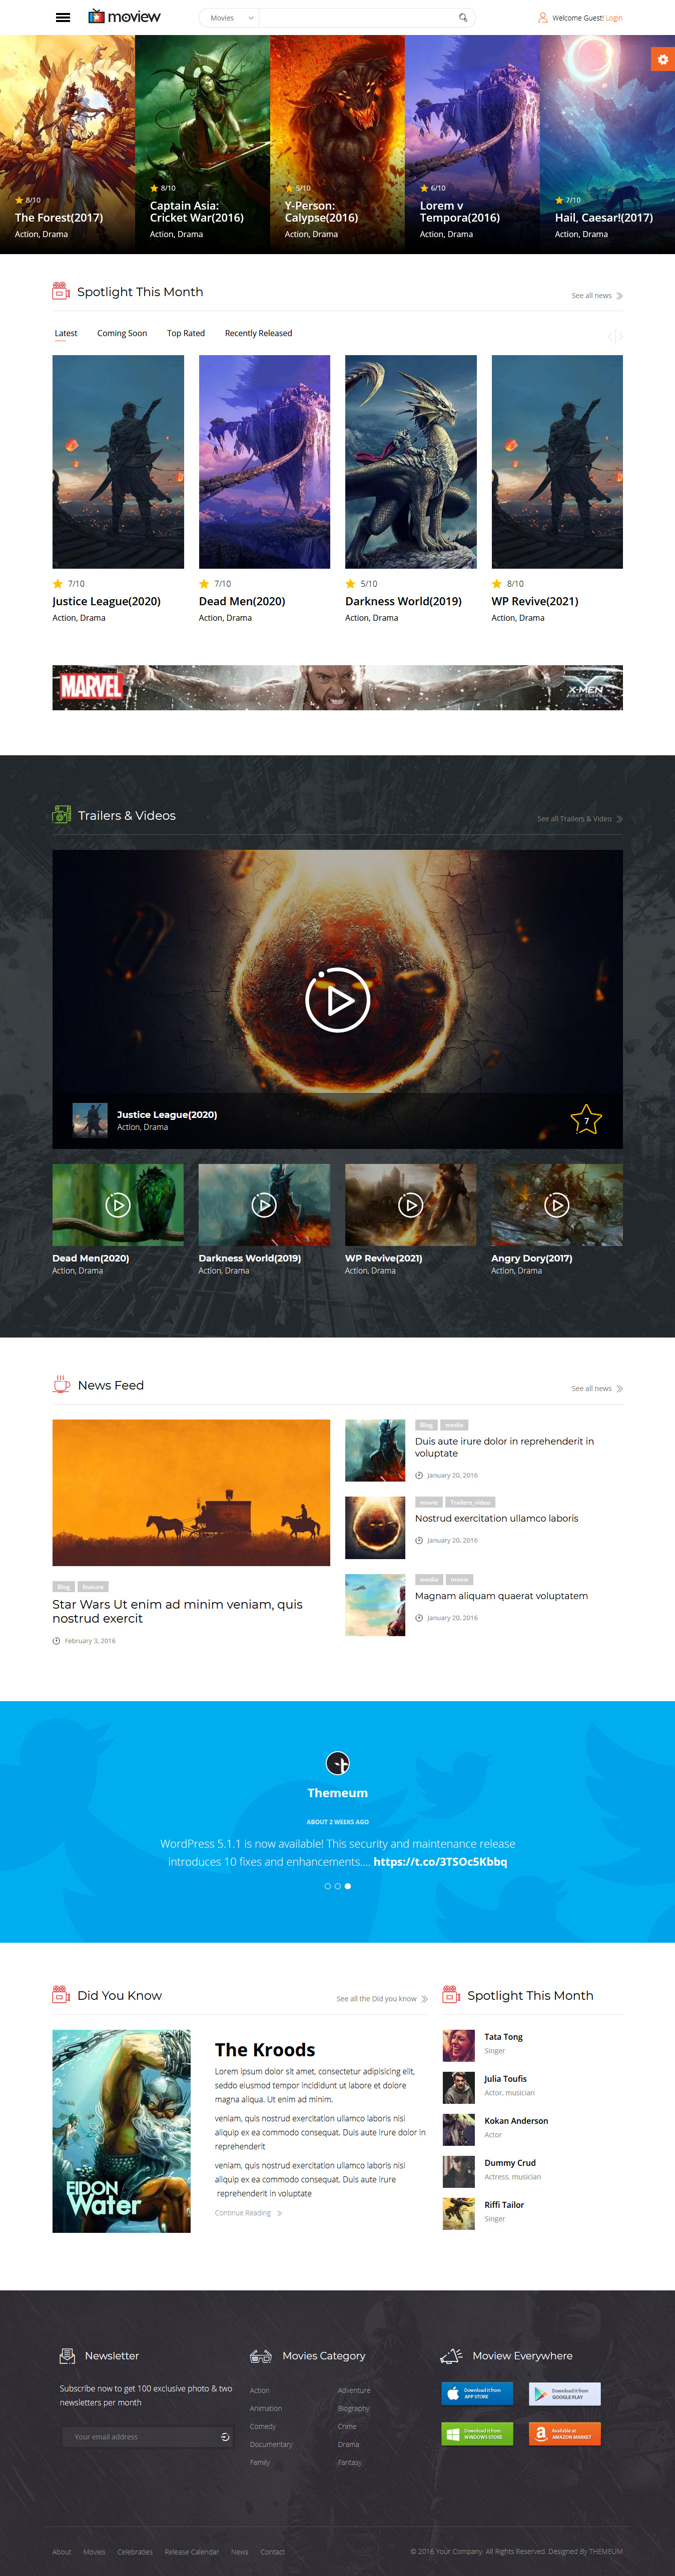 Moview Responsive Film Video DB & Review Theme